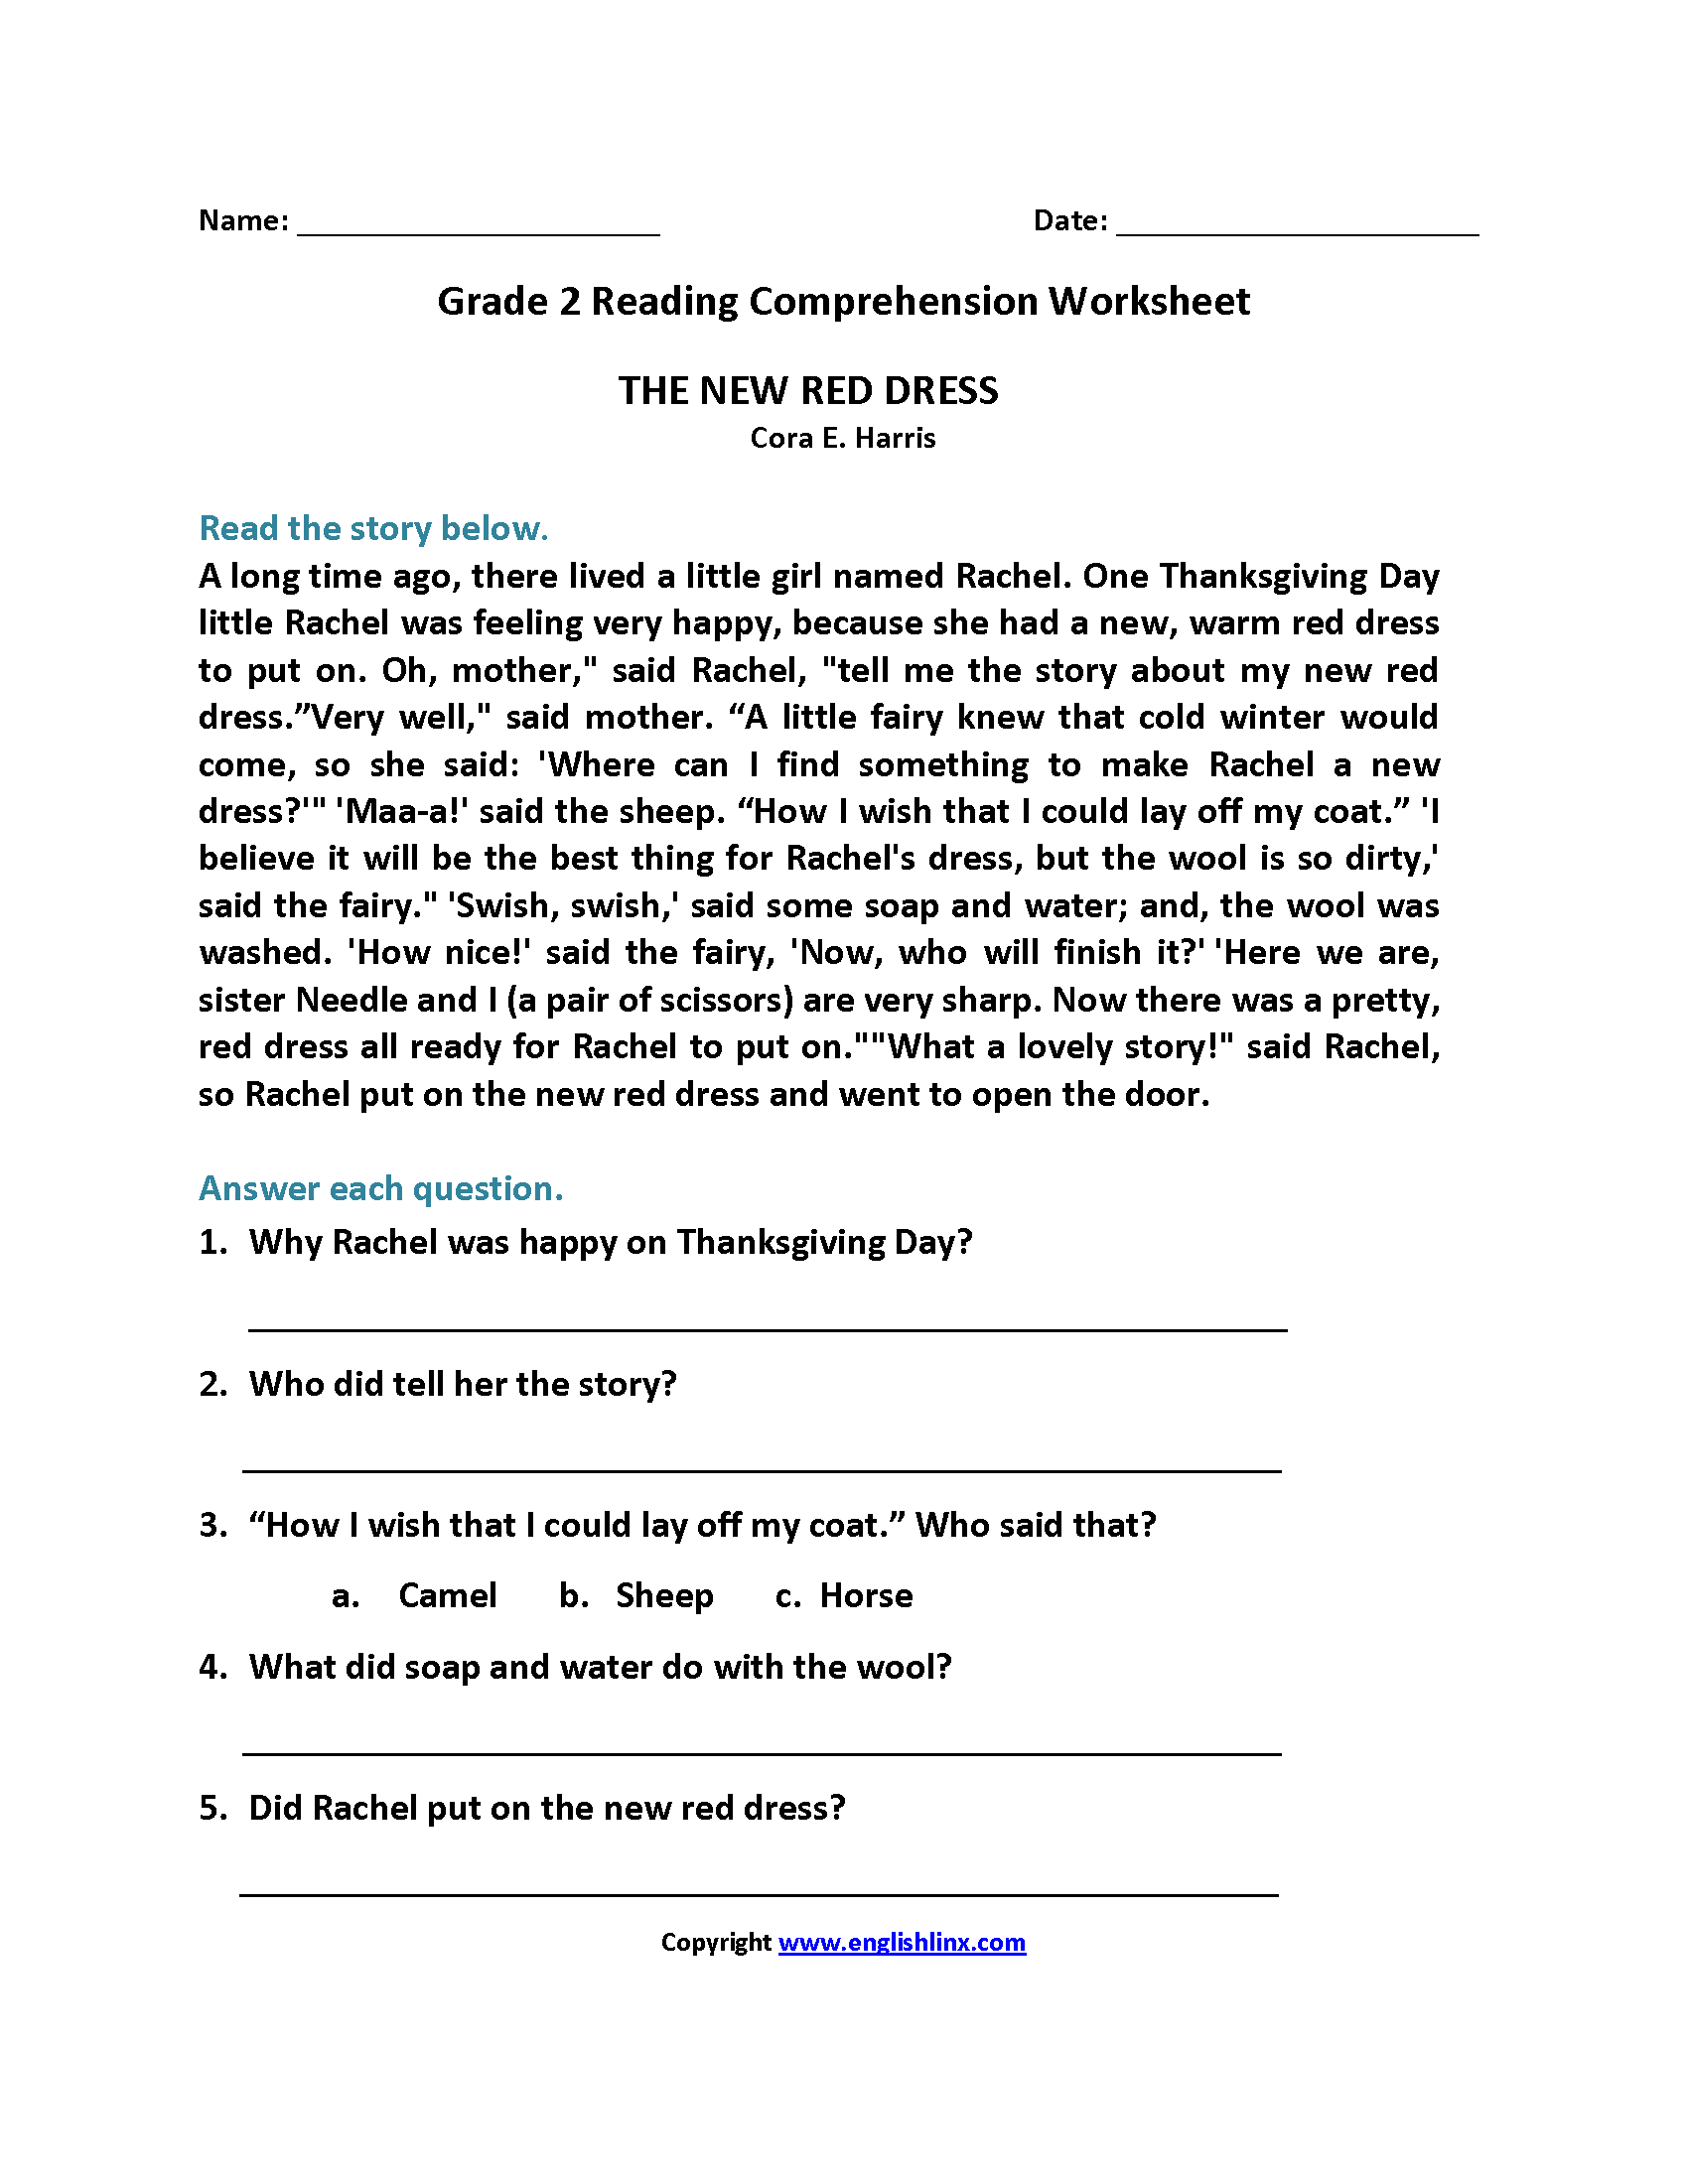 Reading Worksheets   Second Grade Reading Worksheets   Reading  comprehension worksheets [ 2200 x 1700 Pixel ]